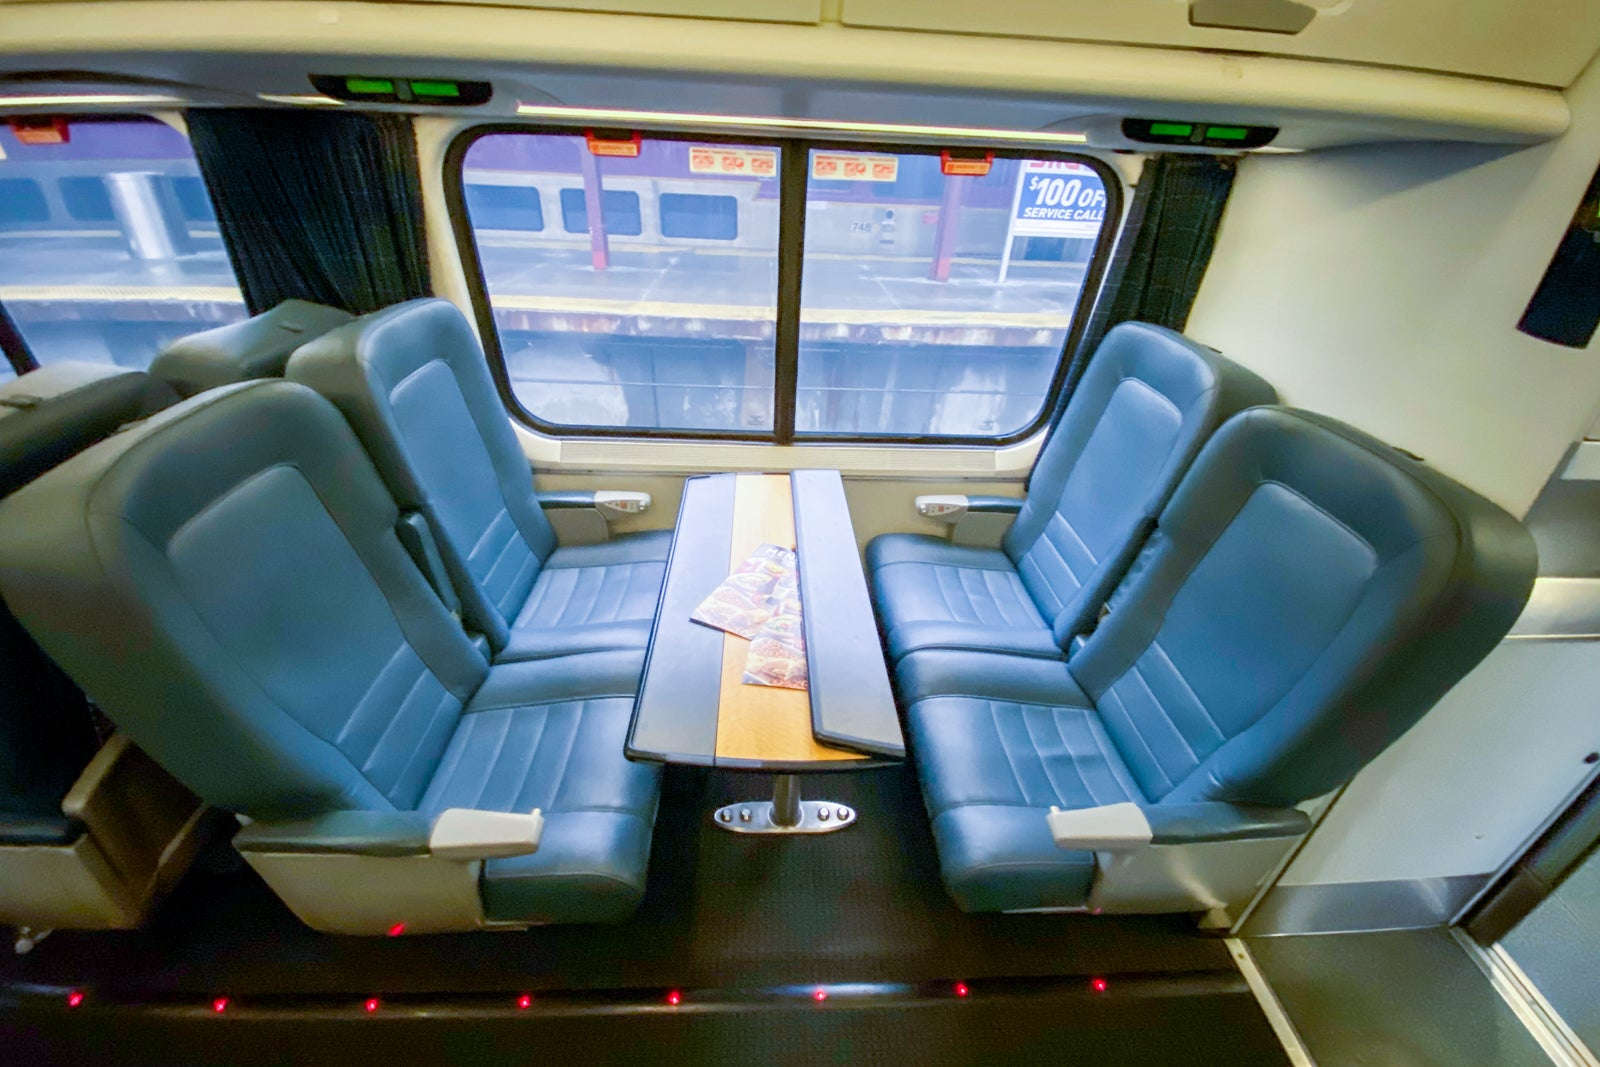 A review of Amtrak's Acela business class